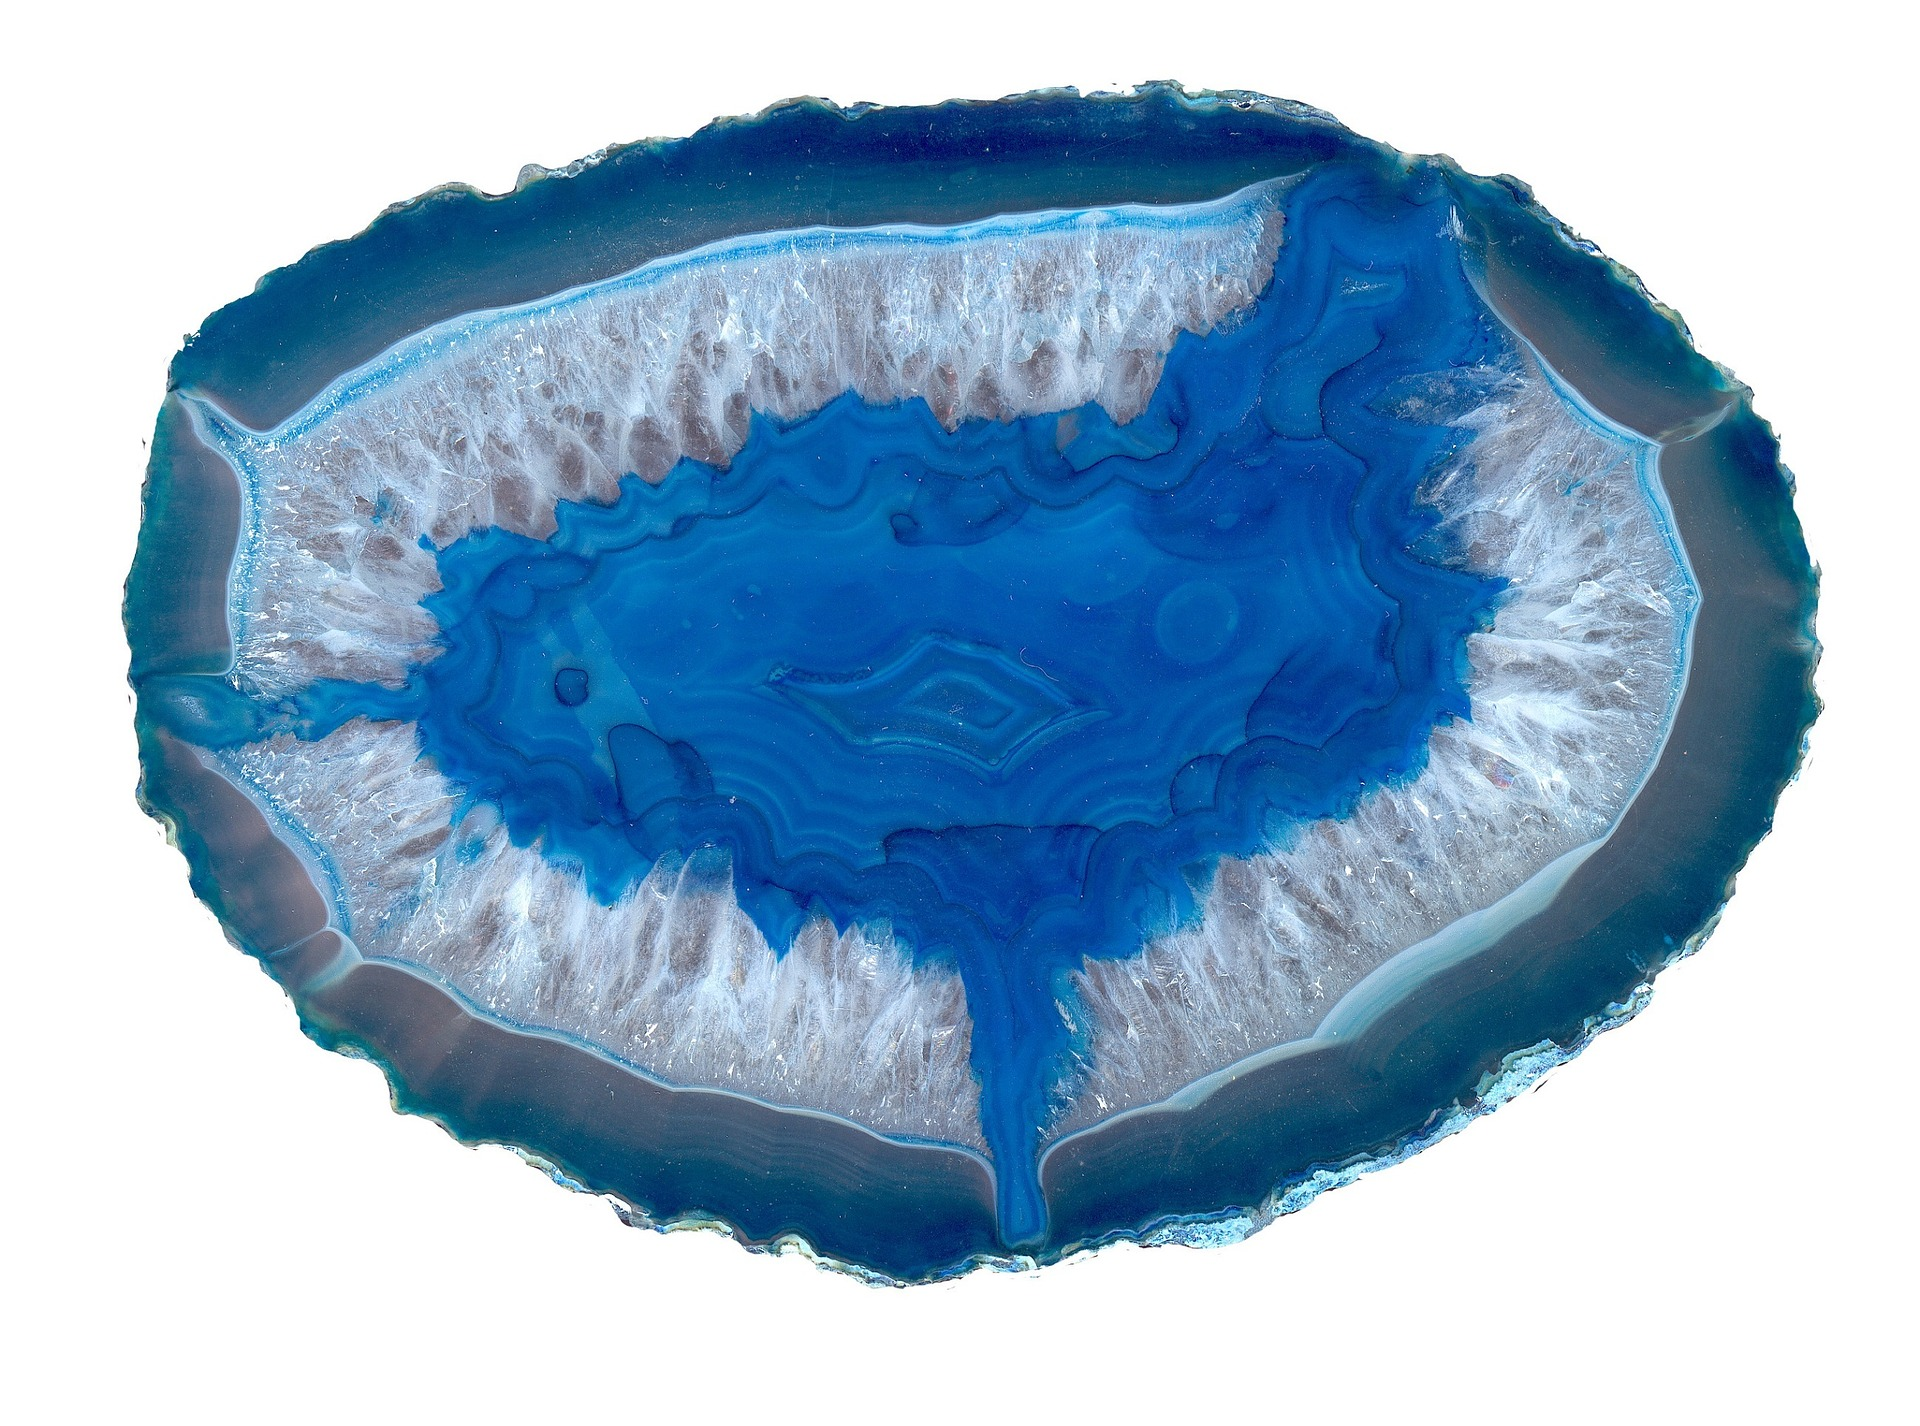 Free, Download, Discreet Evil Eye Digital Protection Ward Blue Agate Geode 1